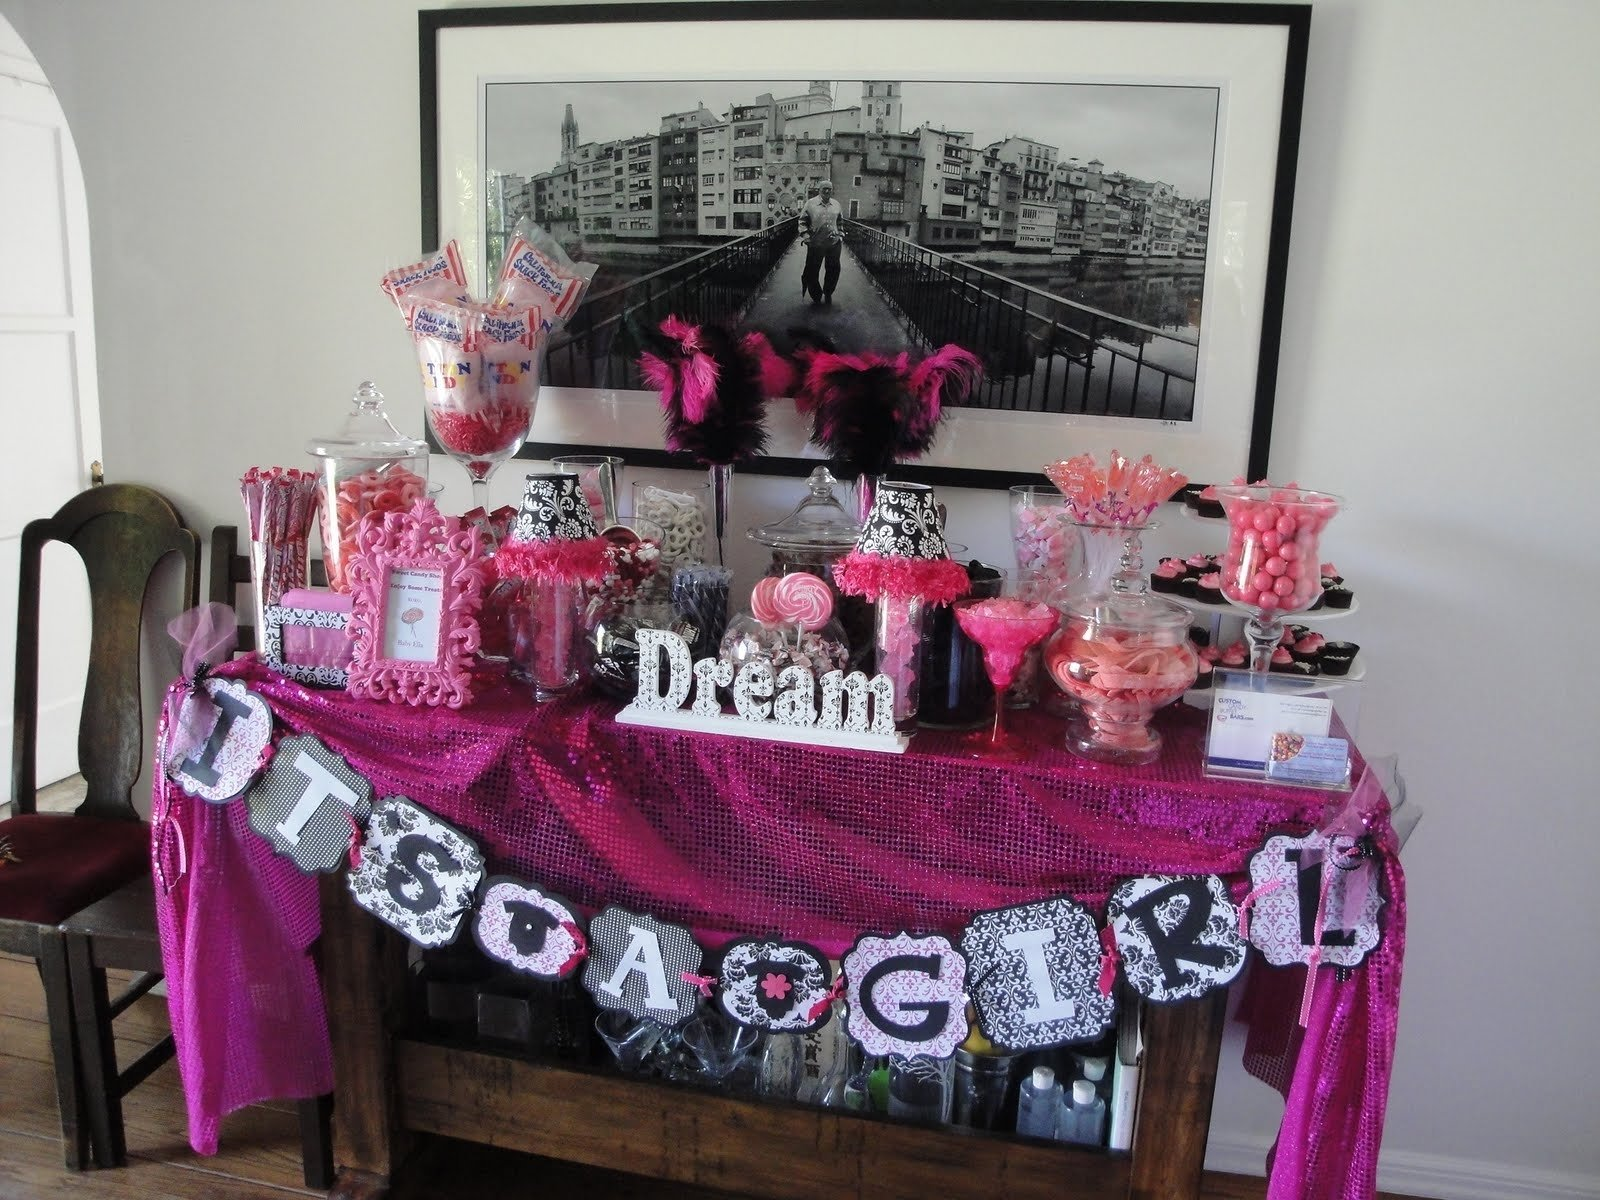 10 Perfect Pink And Black Baby Shower Ideas simple and cheap baby shower candy bar ideas baby shower ideas gallery 2021